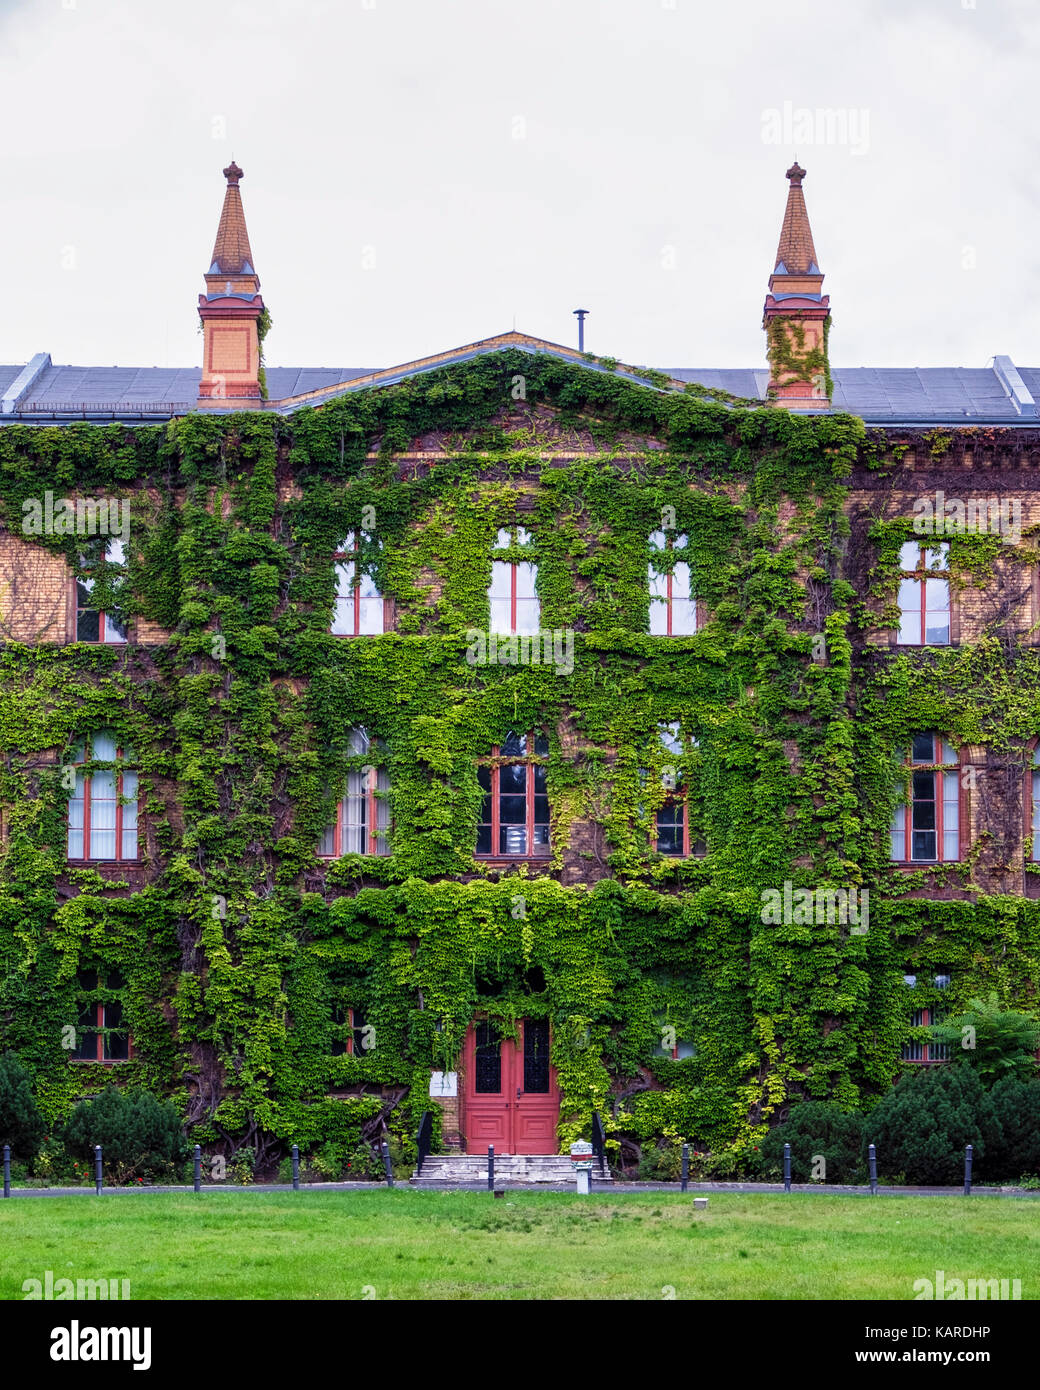 Berlin, Wittenau.Karl-Bonhoeffer-Nervenklinik mental hospital,Psychiatric clinic building No.10 houses museum commemorating - Stock Image